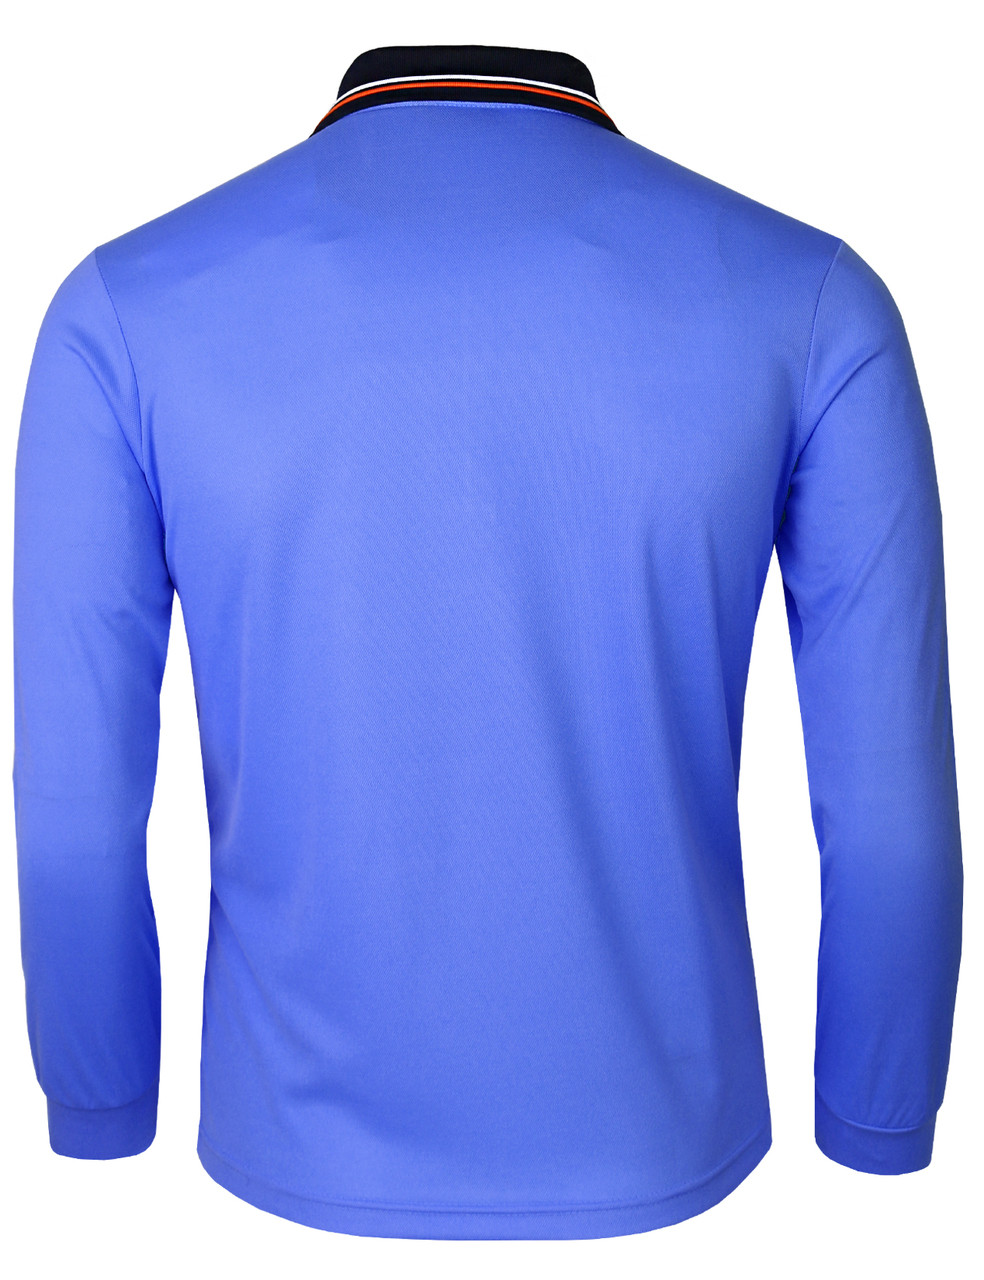 bb8100628 ... Long Sleeve Dri Fit Zip Polo Shirt-Unisex · blue-side · blue-front ·  blue-back